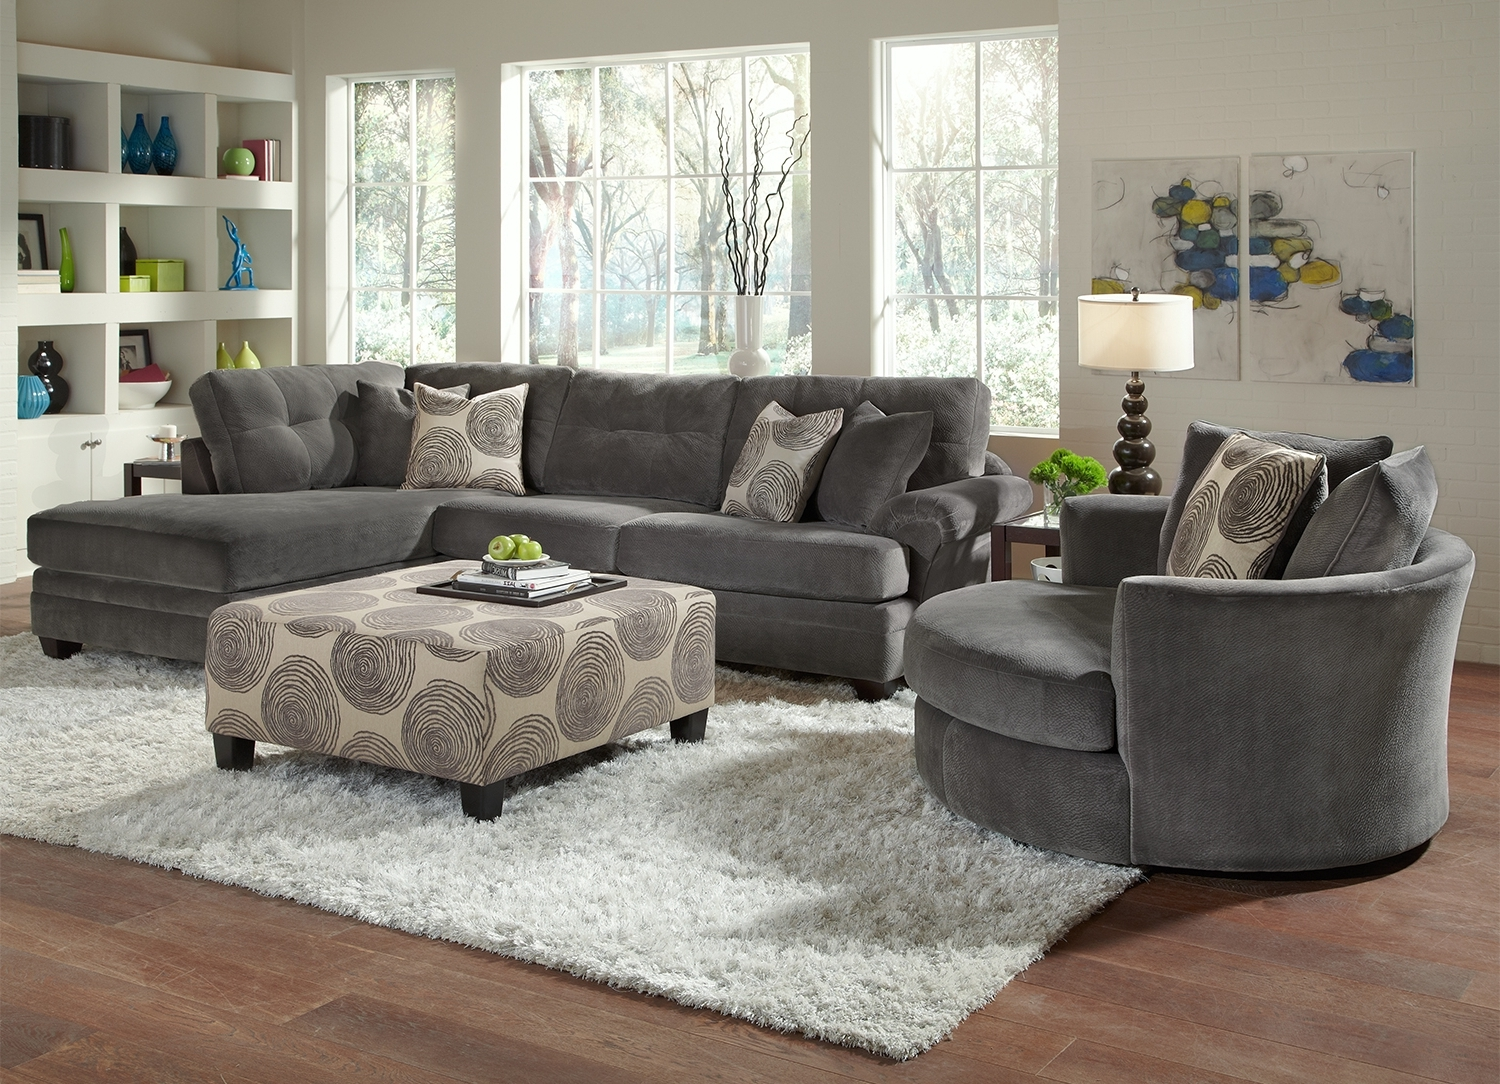 Tips to buy swivel chairs for living room for Cheap modern living room furniture